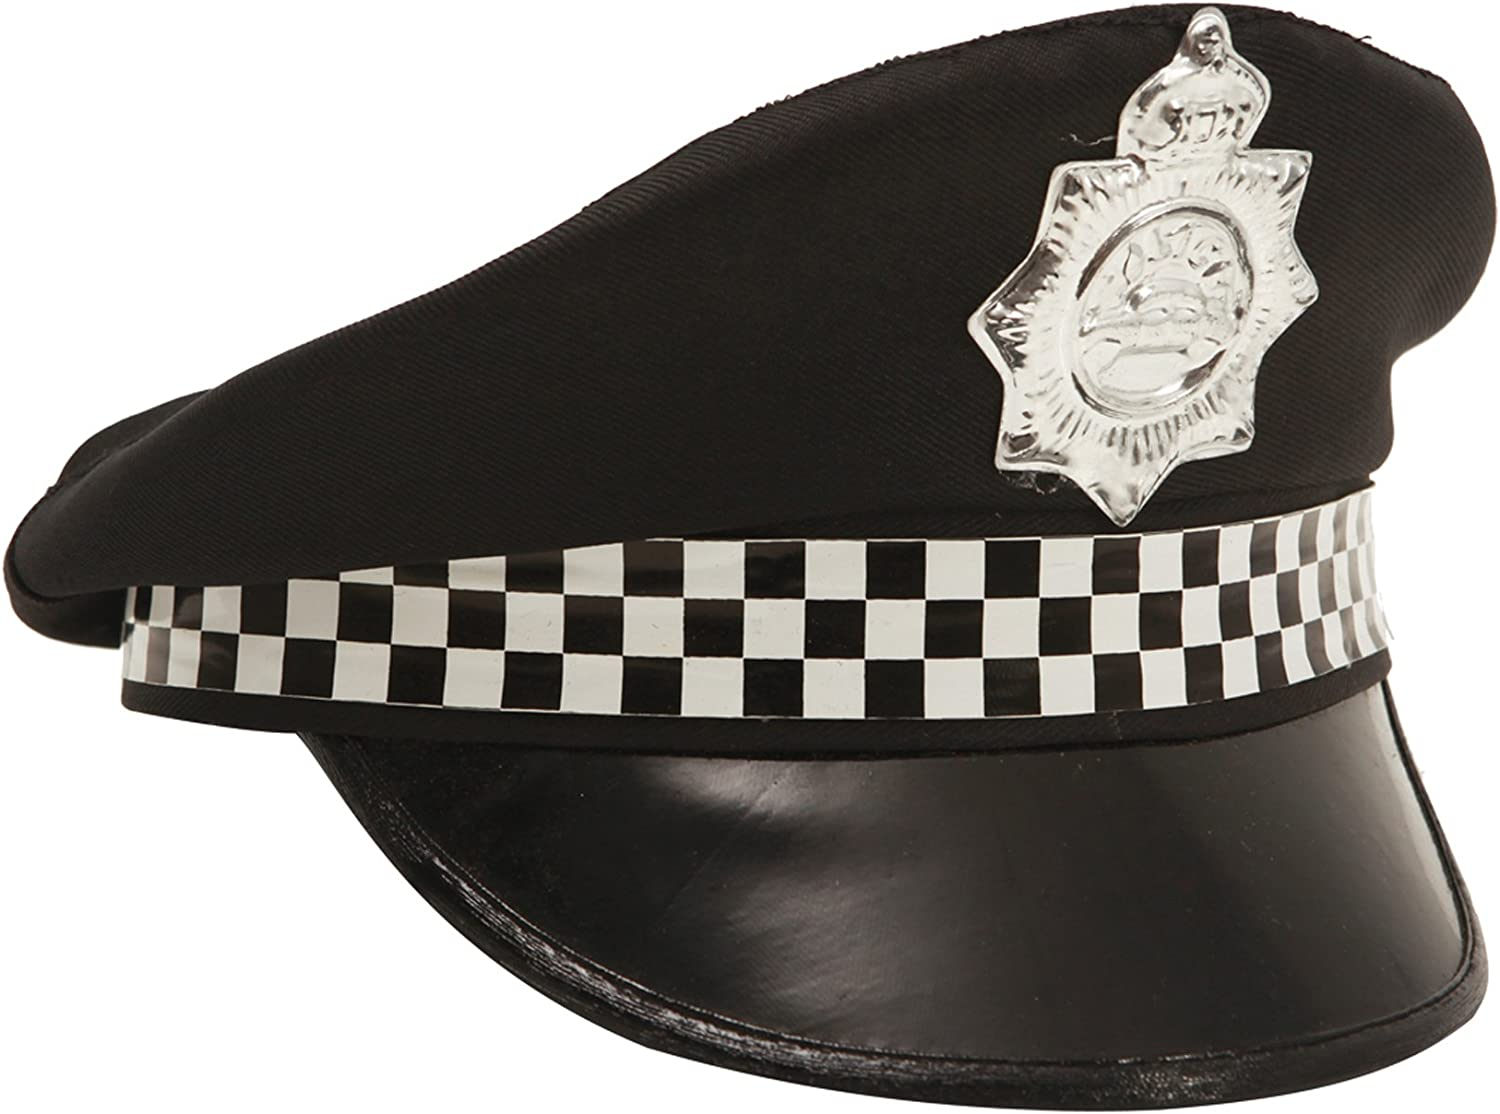 My Other Me - Gorra de Policía Municipal, talla única (Viving Costumes MOM01608): Amazon.es: Juguetes y juegos